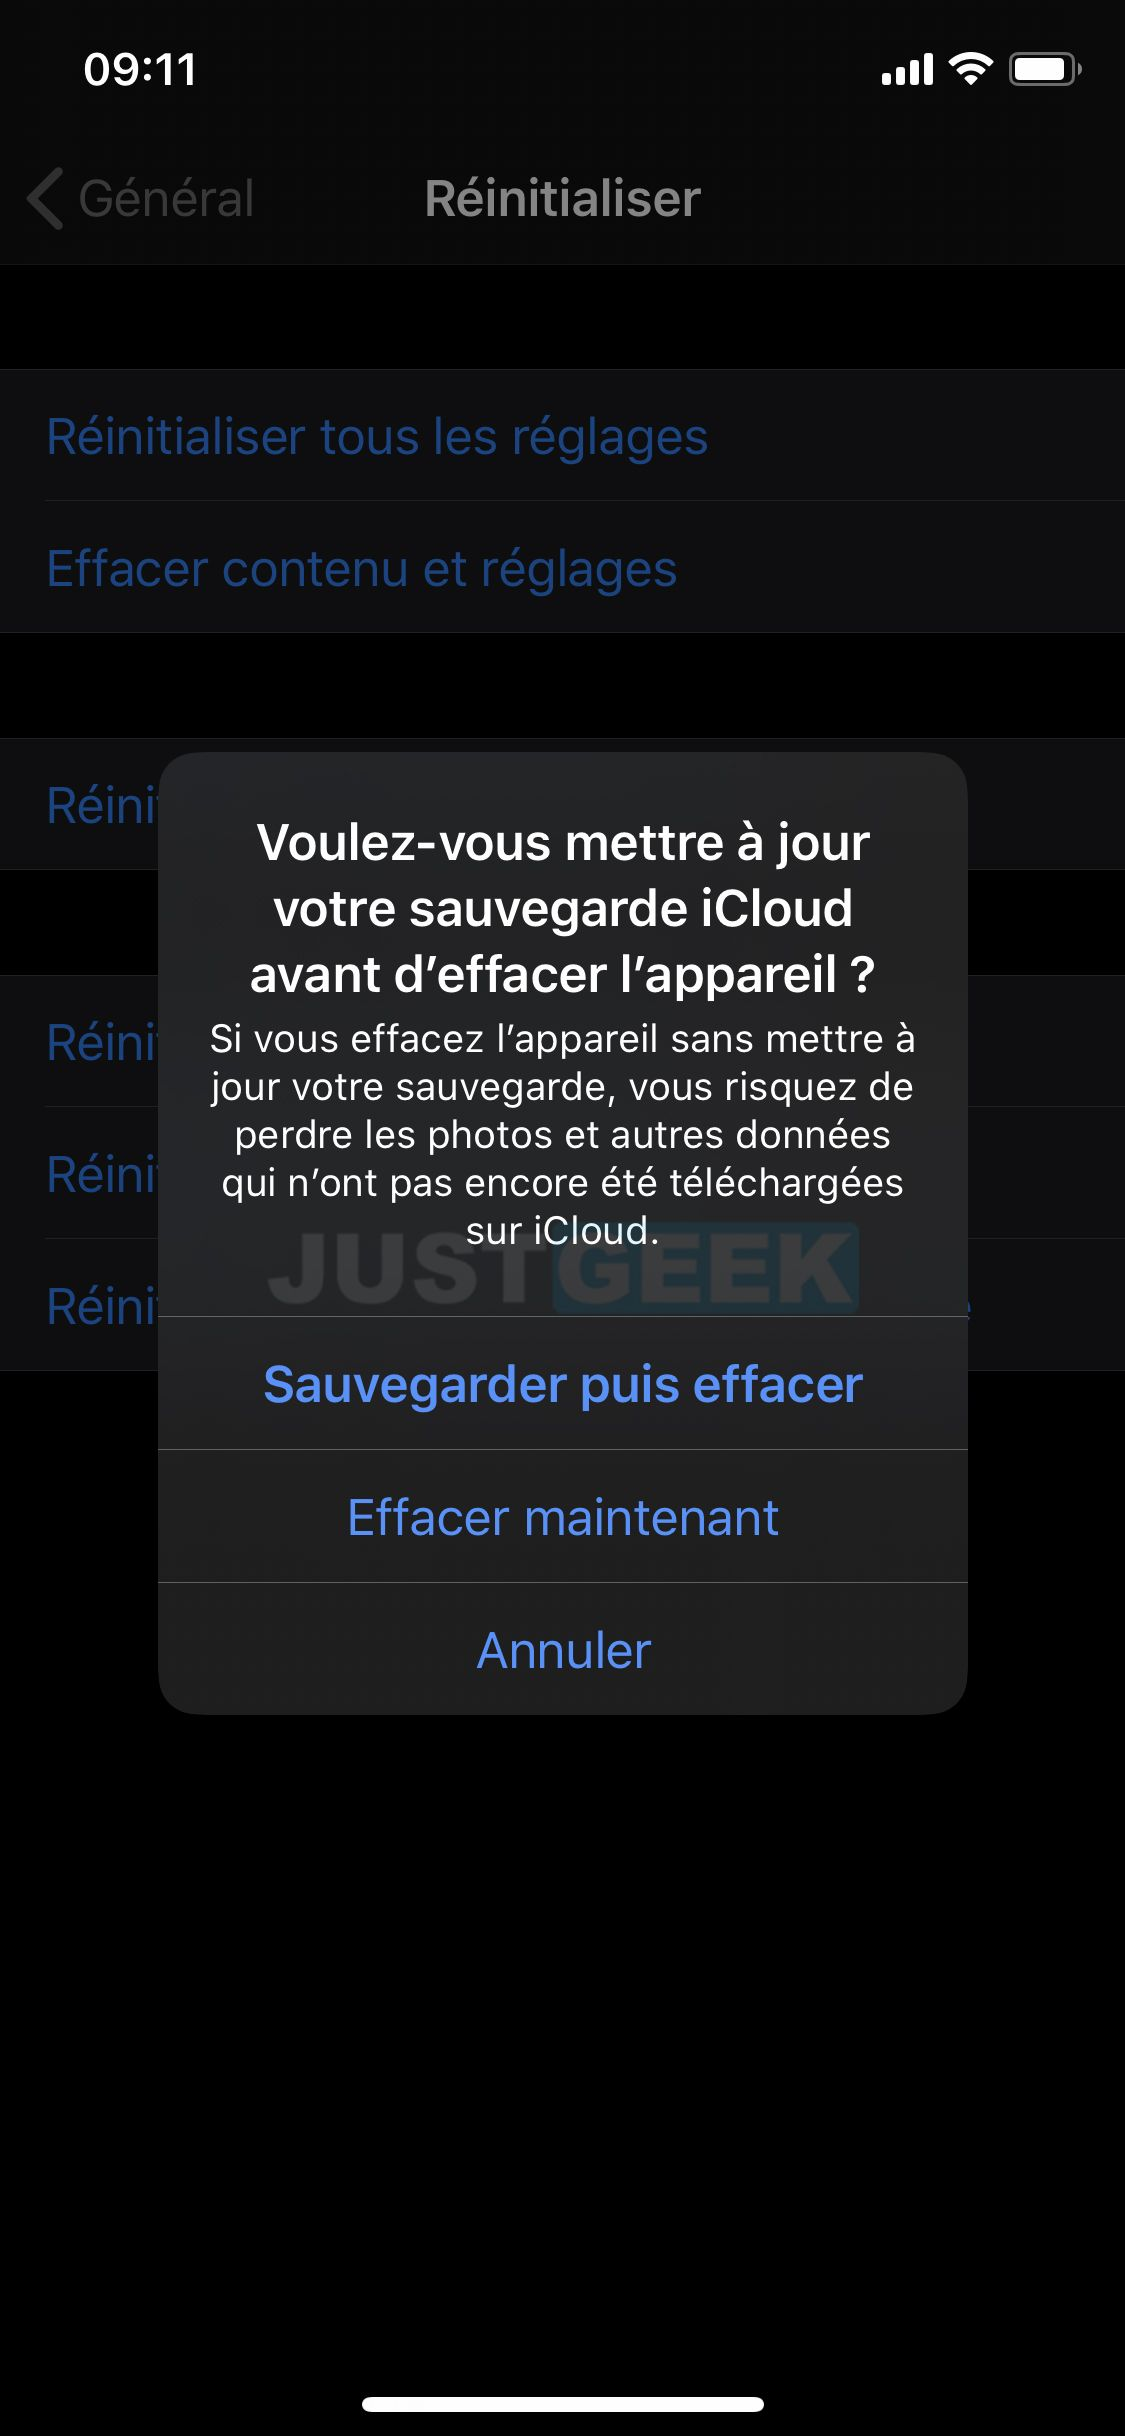 Confirmer la réinitialisation de l'iPhone